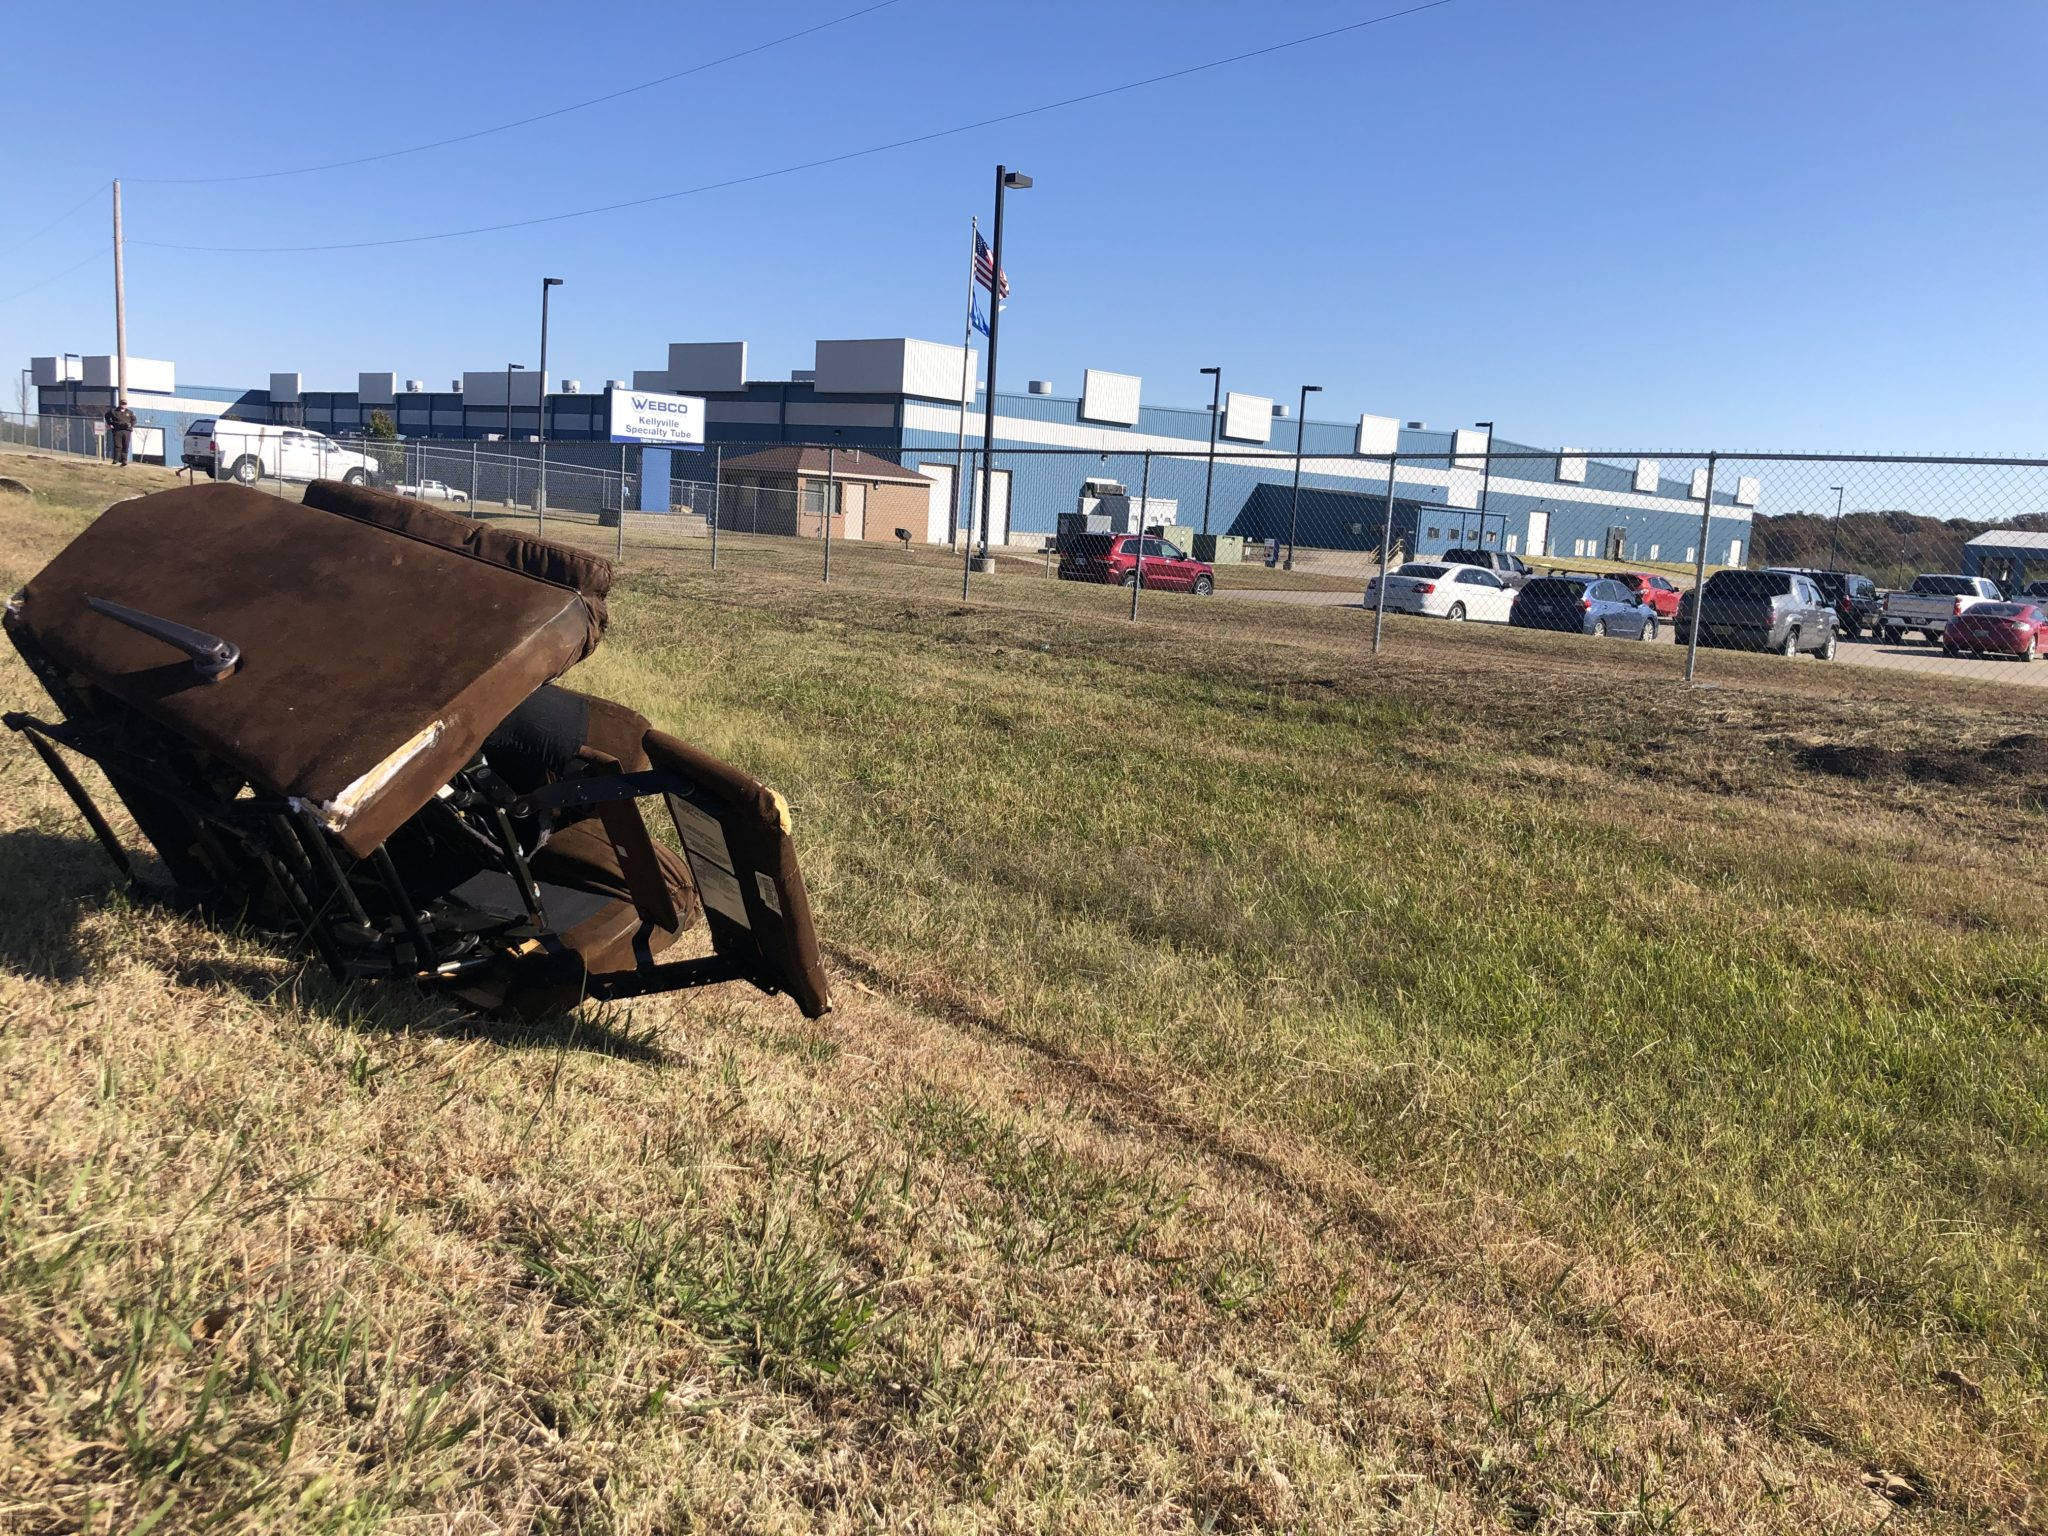 This recliner is all that remains from a fatal accident on Friday evening where a woman was struck trying to remove it from the road.